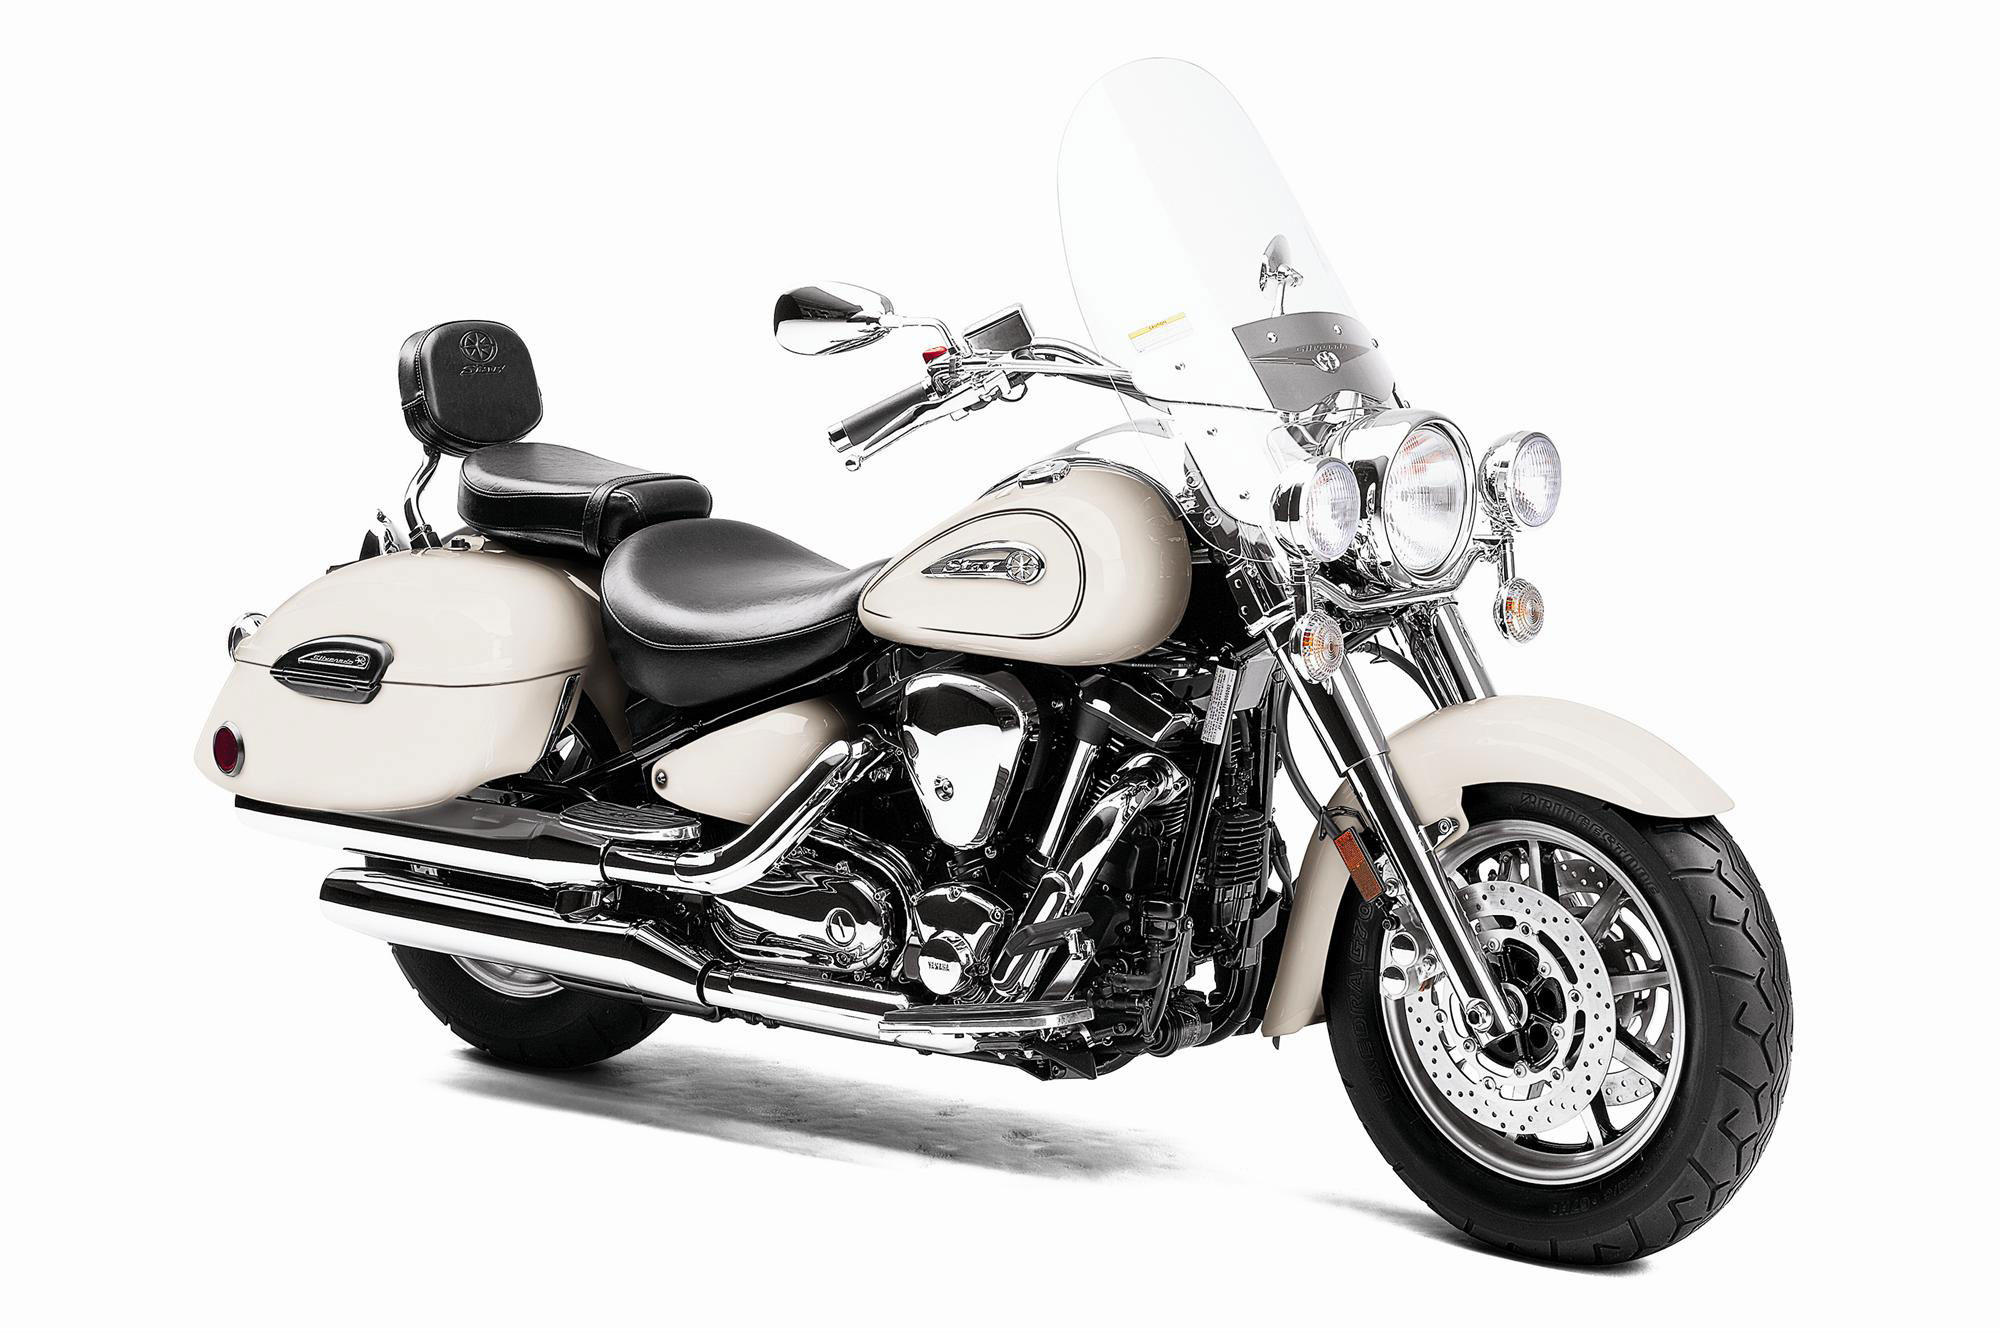 Yamaha Road Star S 2014 #13